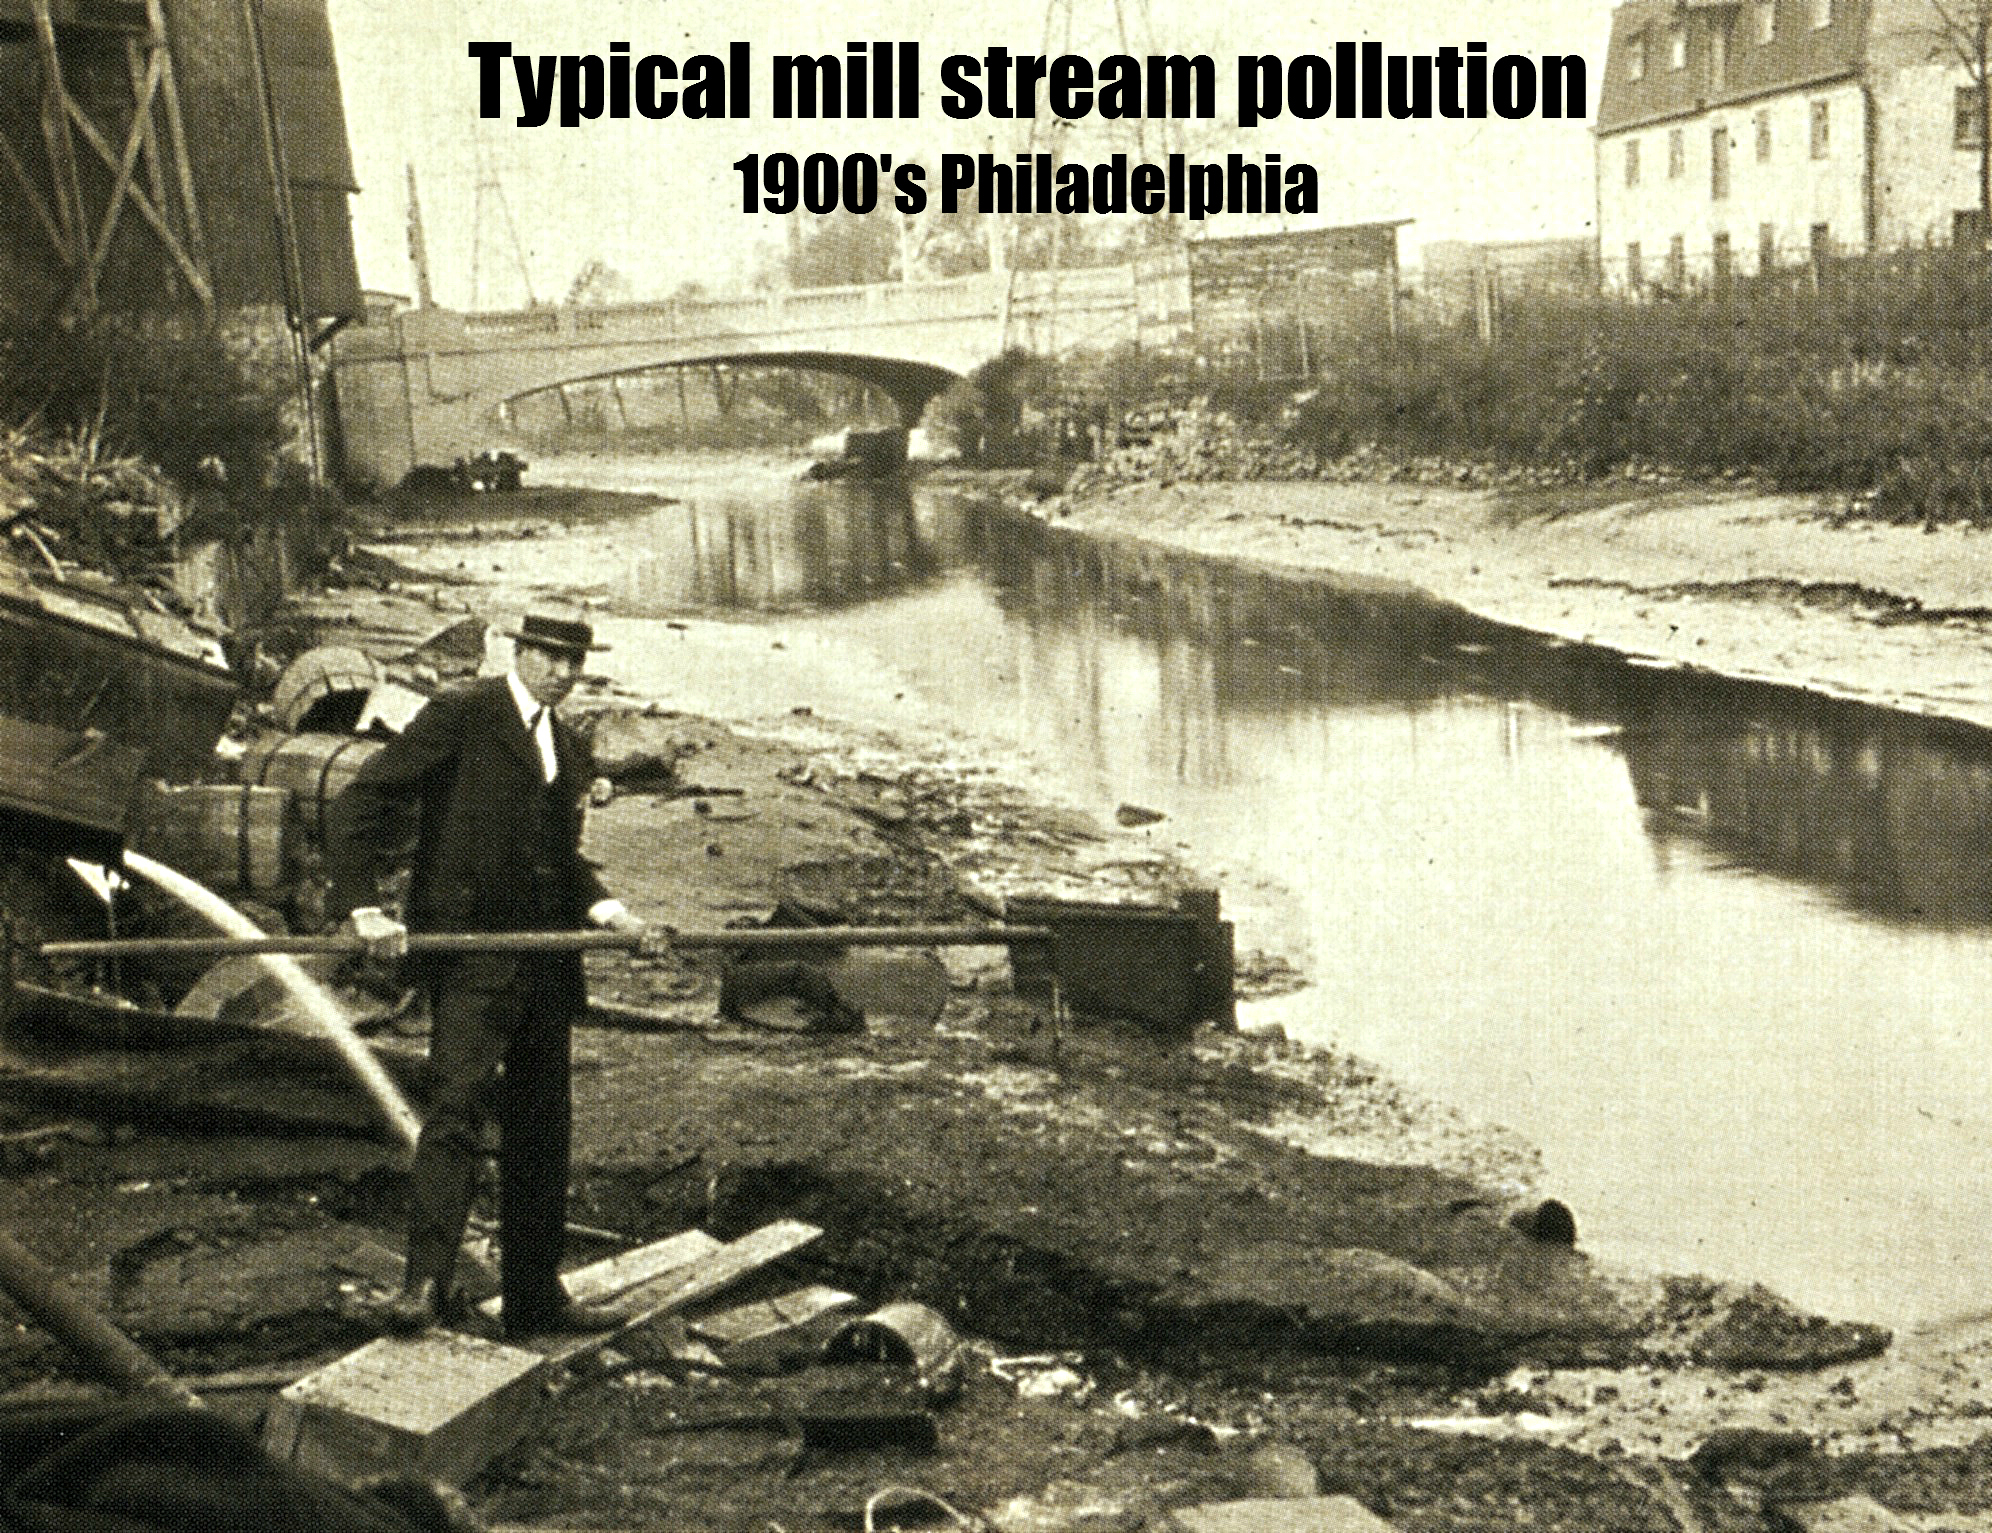 polluted schuylkill man stick pm